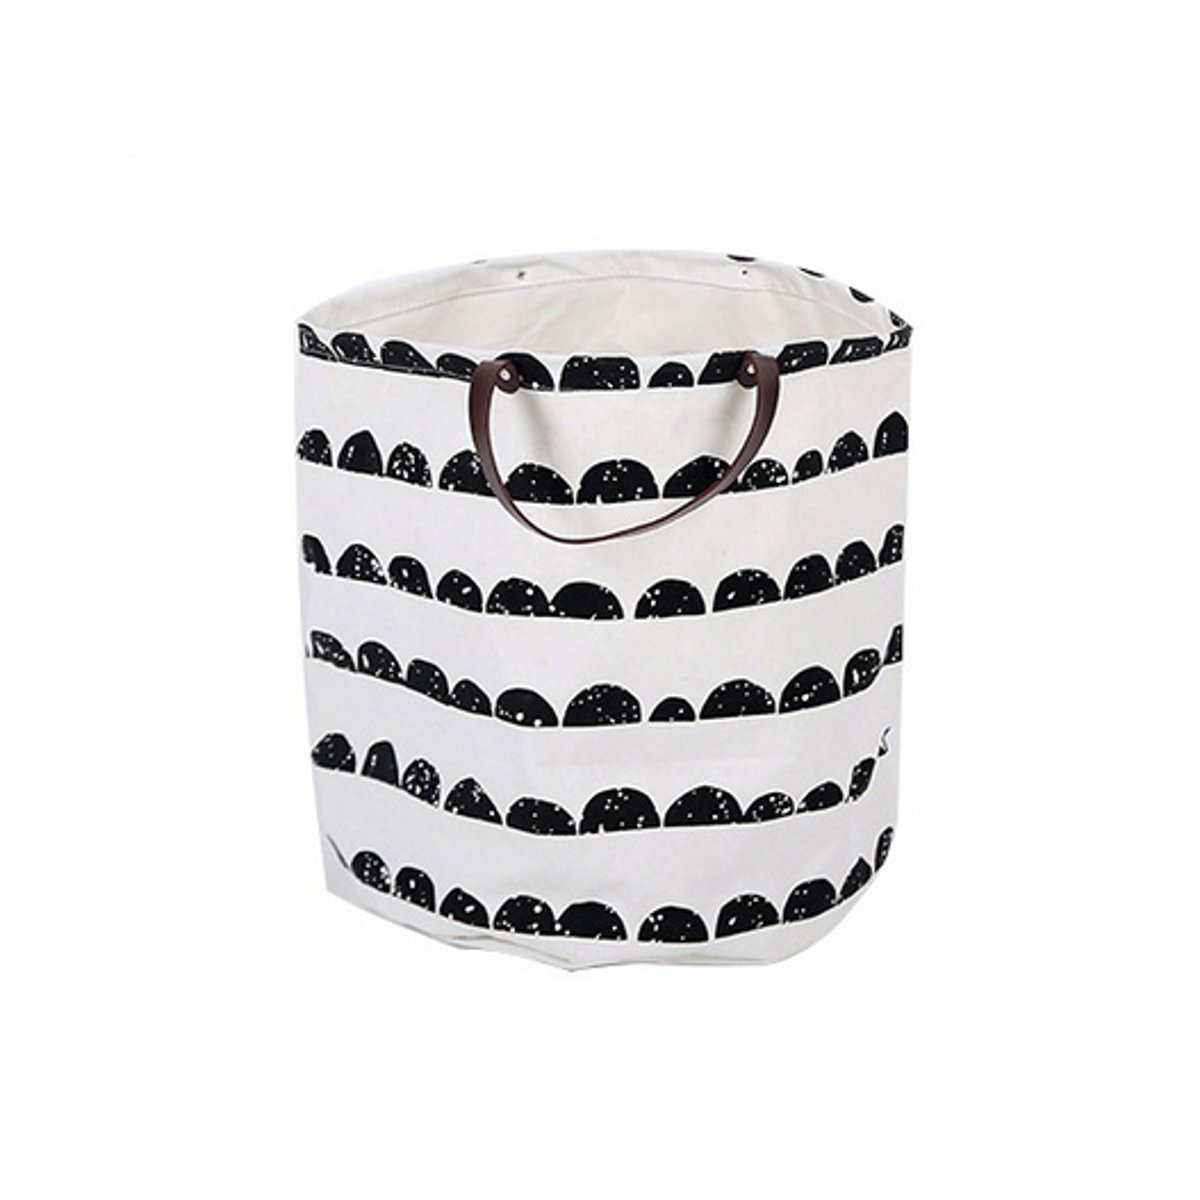 Canvas Laundry Storage Basket Baby Kids Toys Container Basket Leather Handle